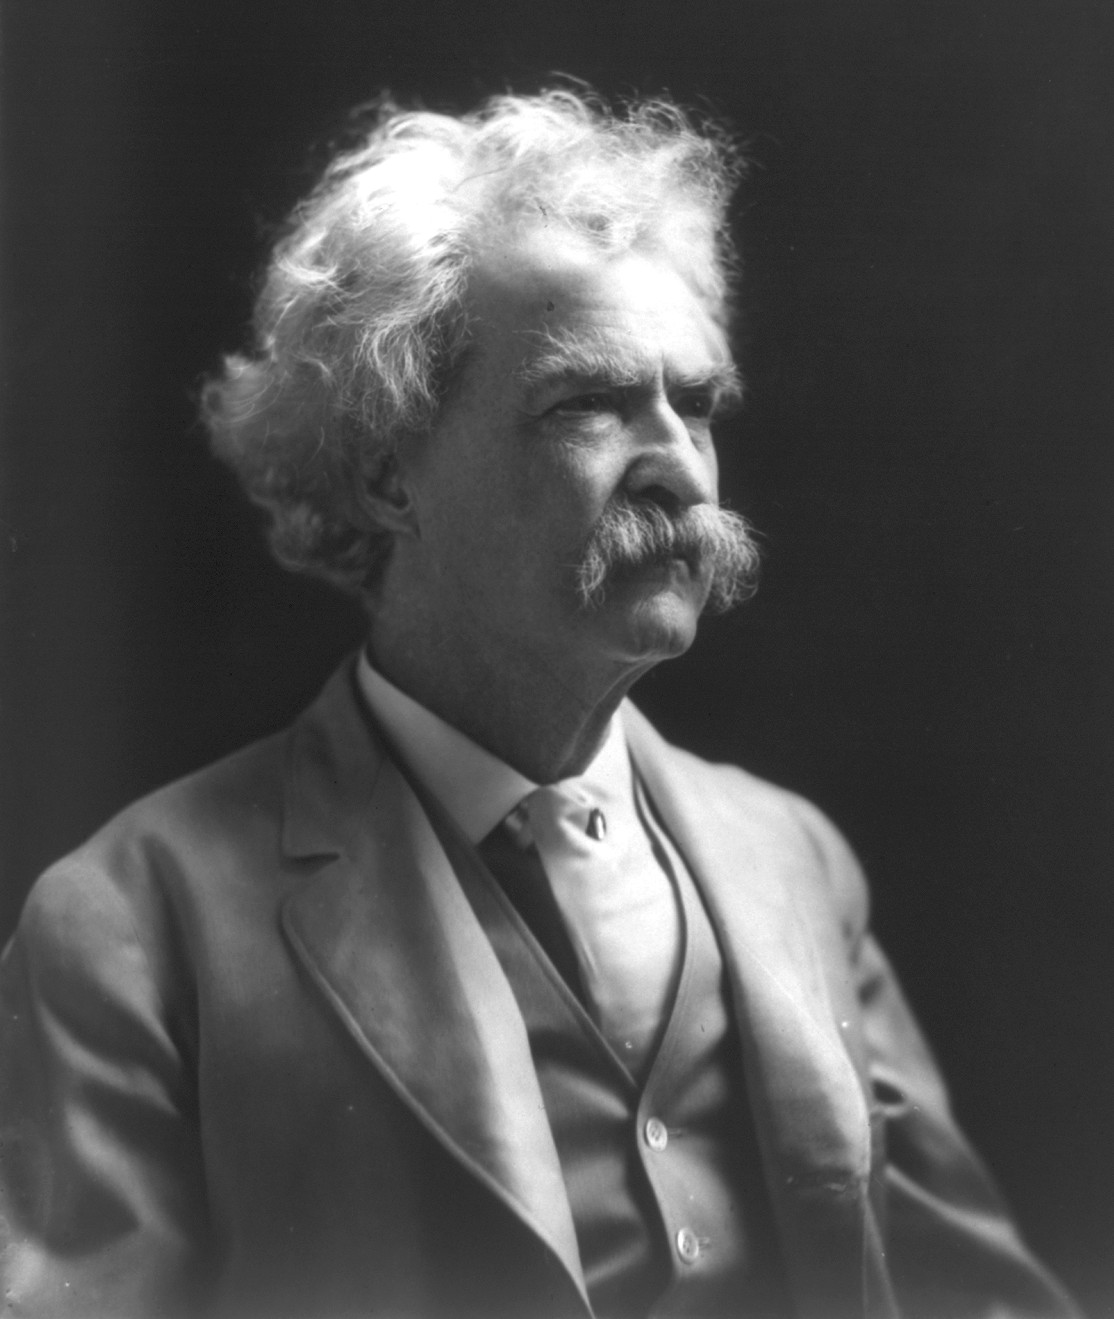 https://i1.wp.com/upload.wikimedia.org/wikipedia/commons/3/31/MarkTwain.LOC.jpg